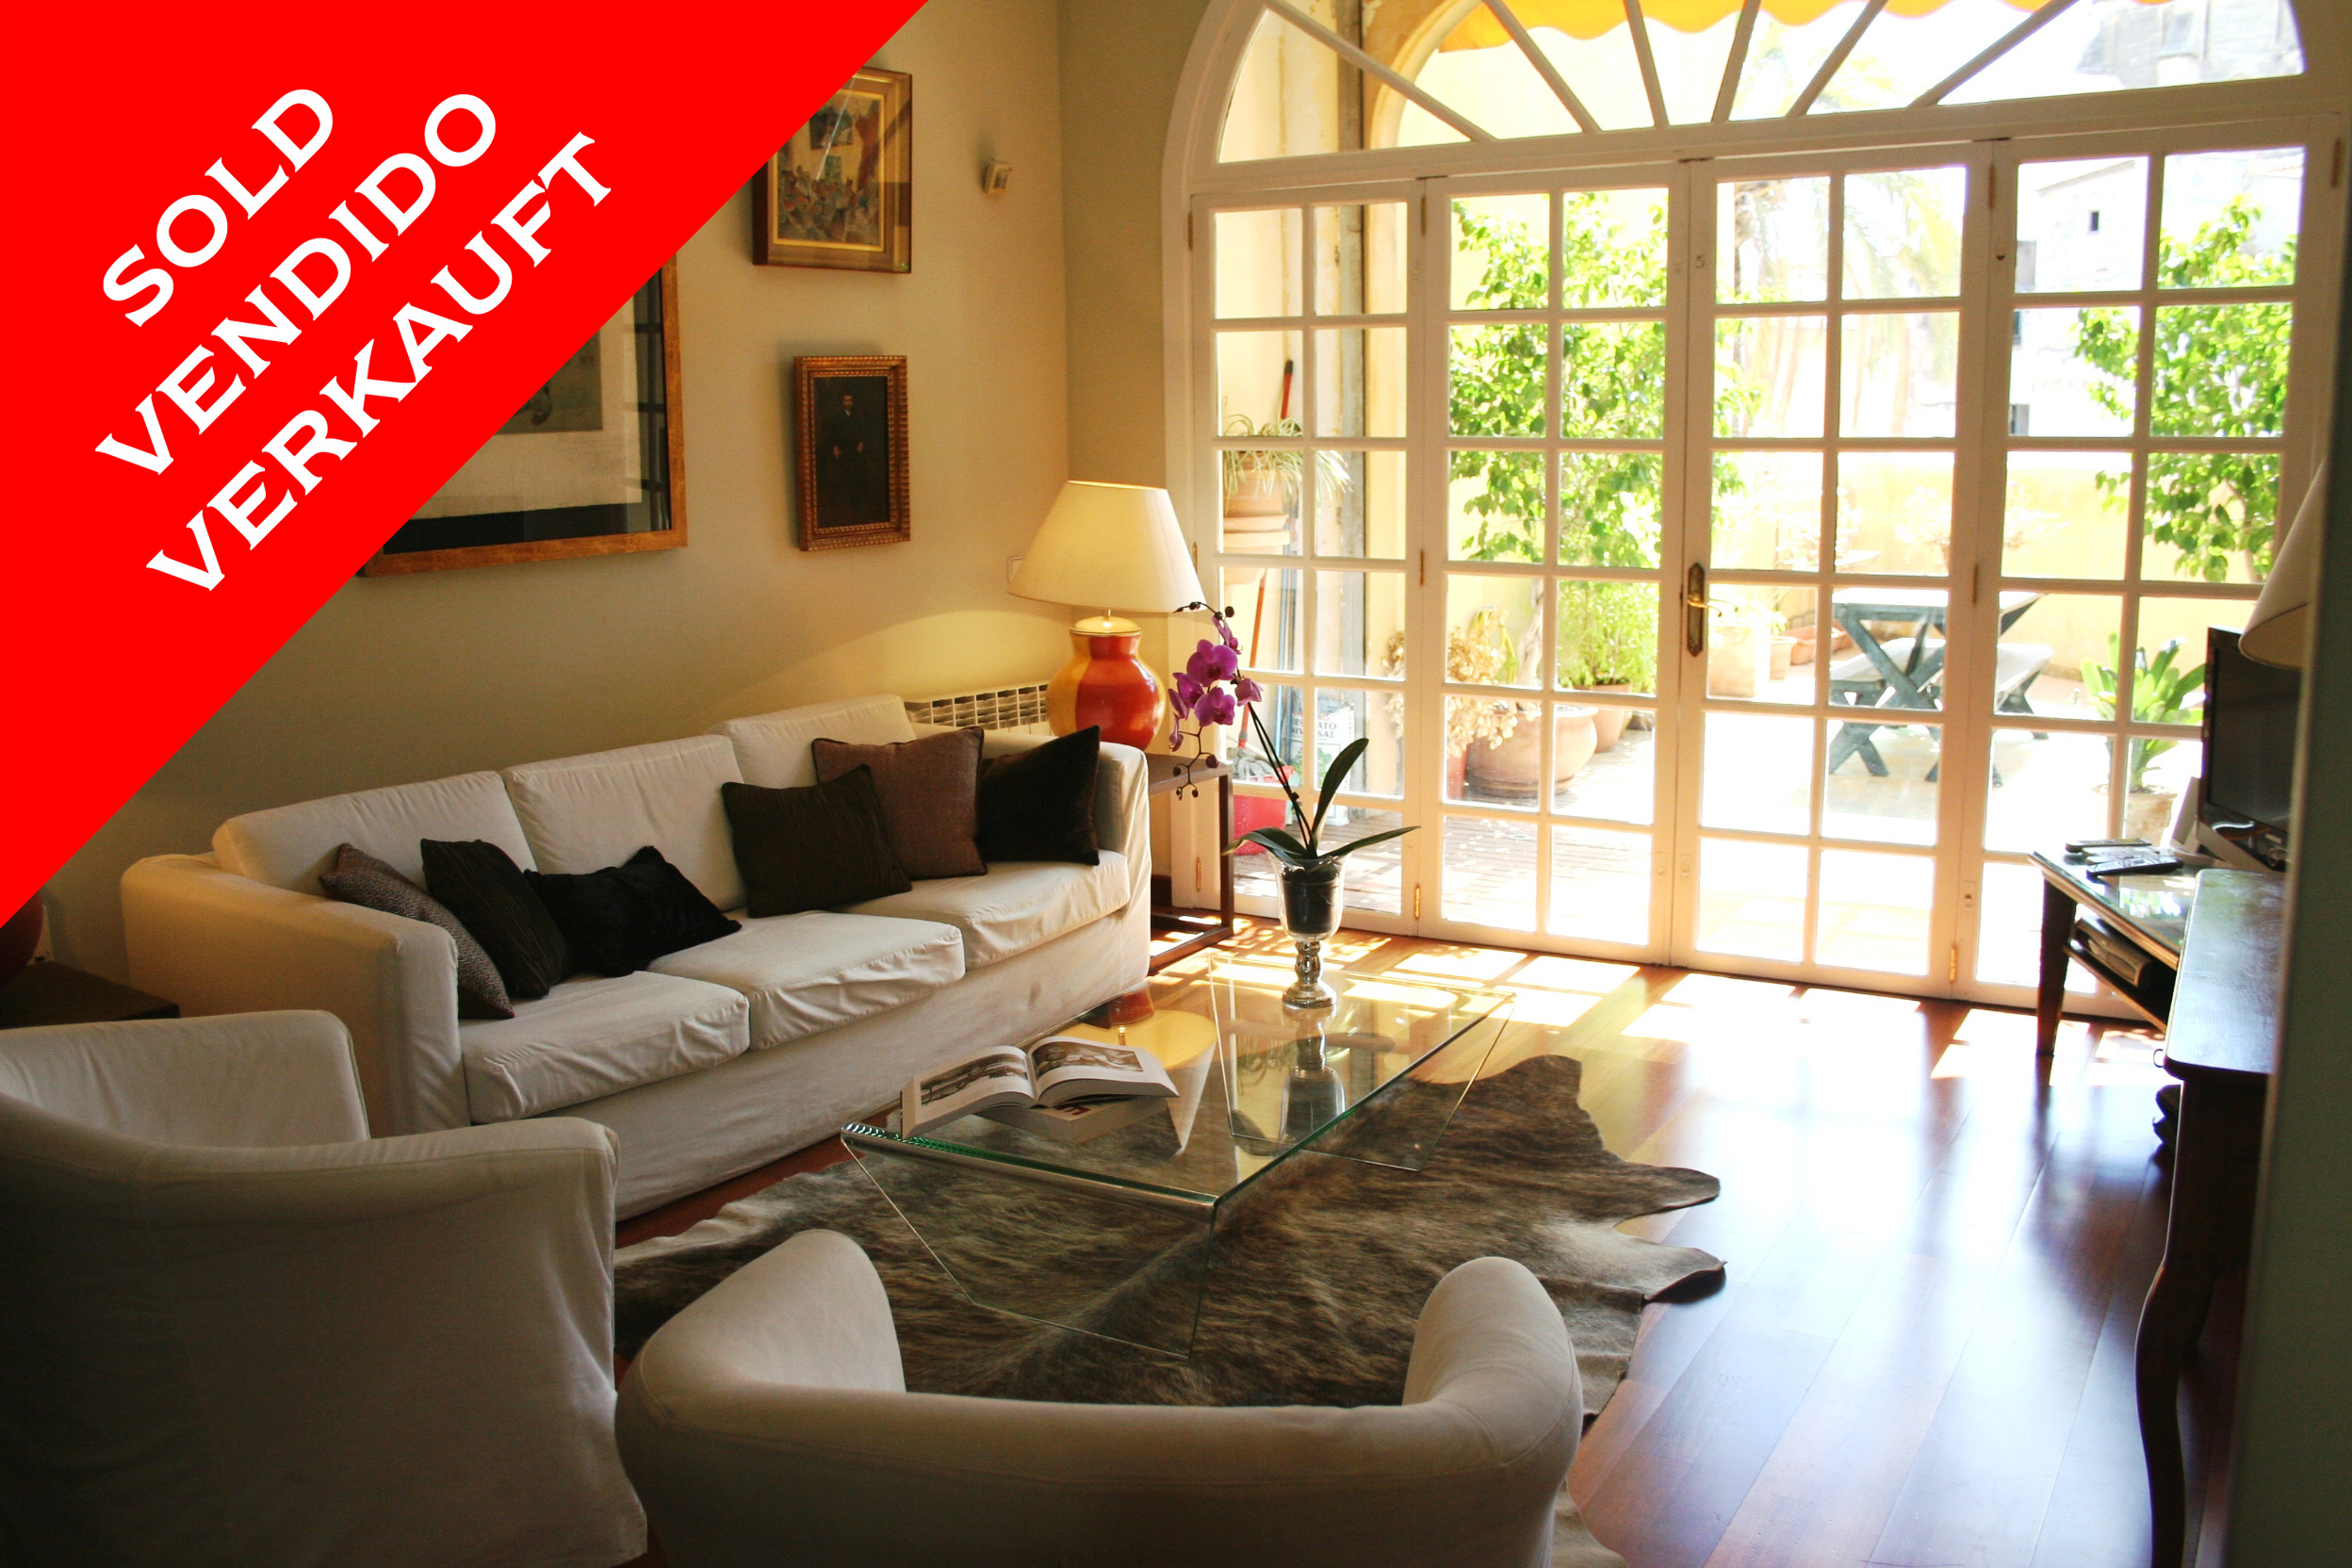 Palma - Family house with terraces in the old town. Sold!